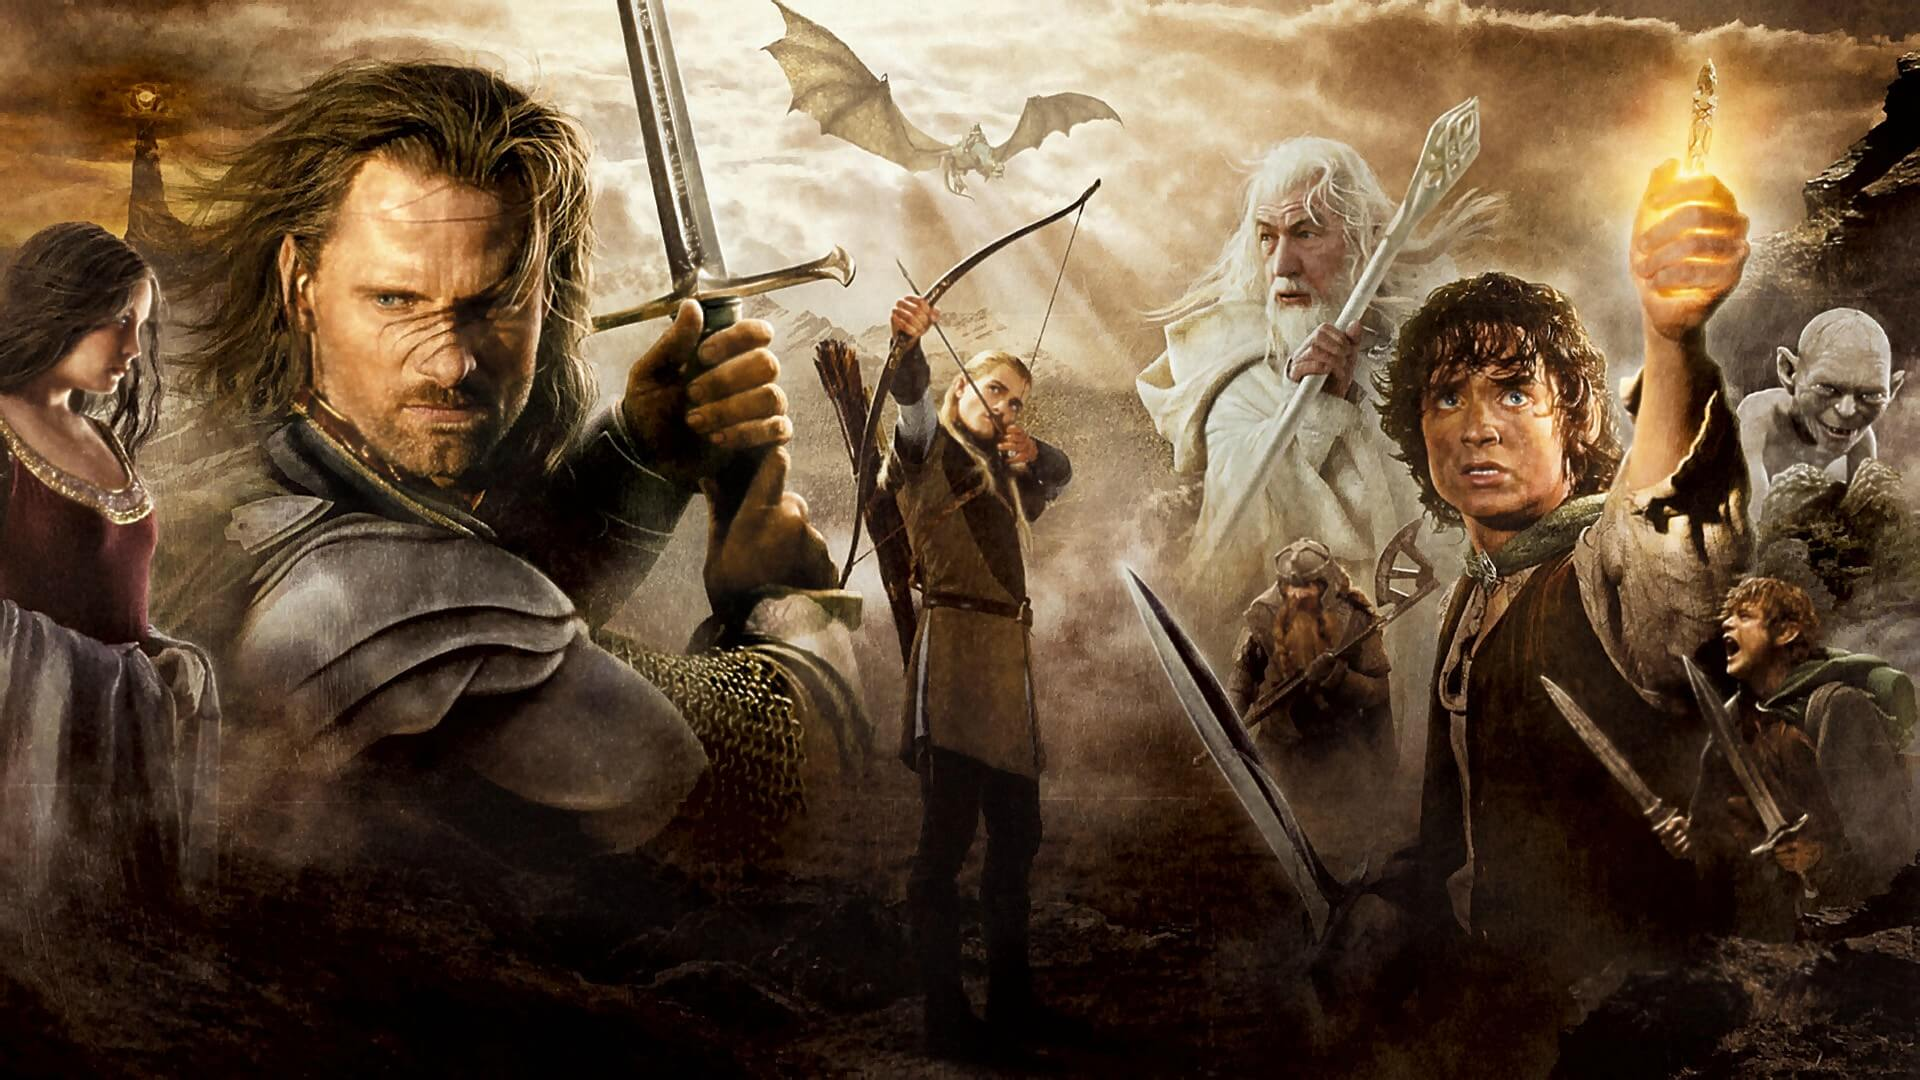 Ultimate Lord of the Rings and Hobbit Box Set Revealed